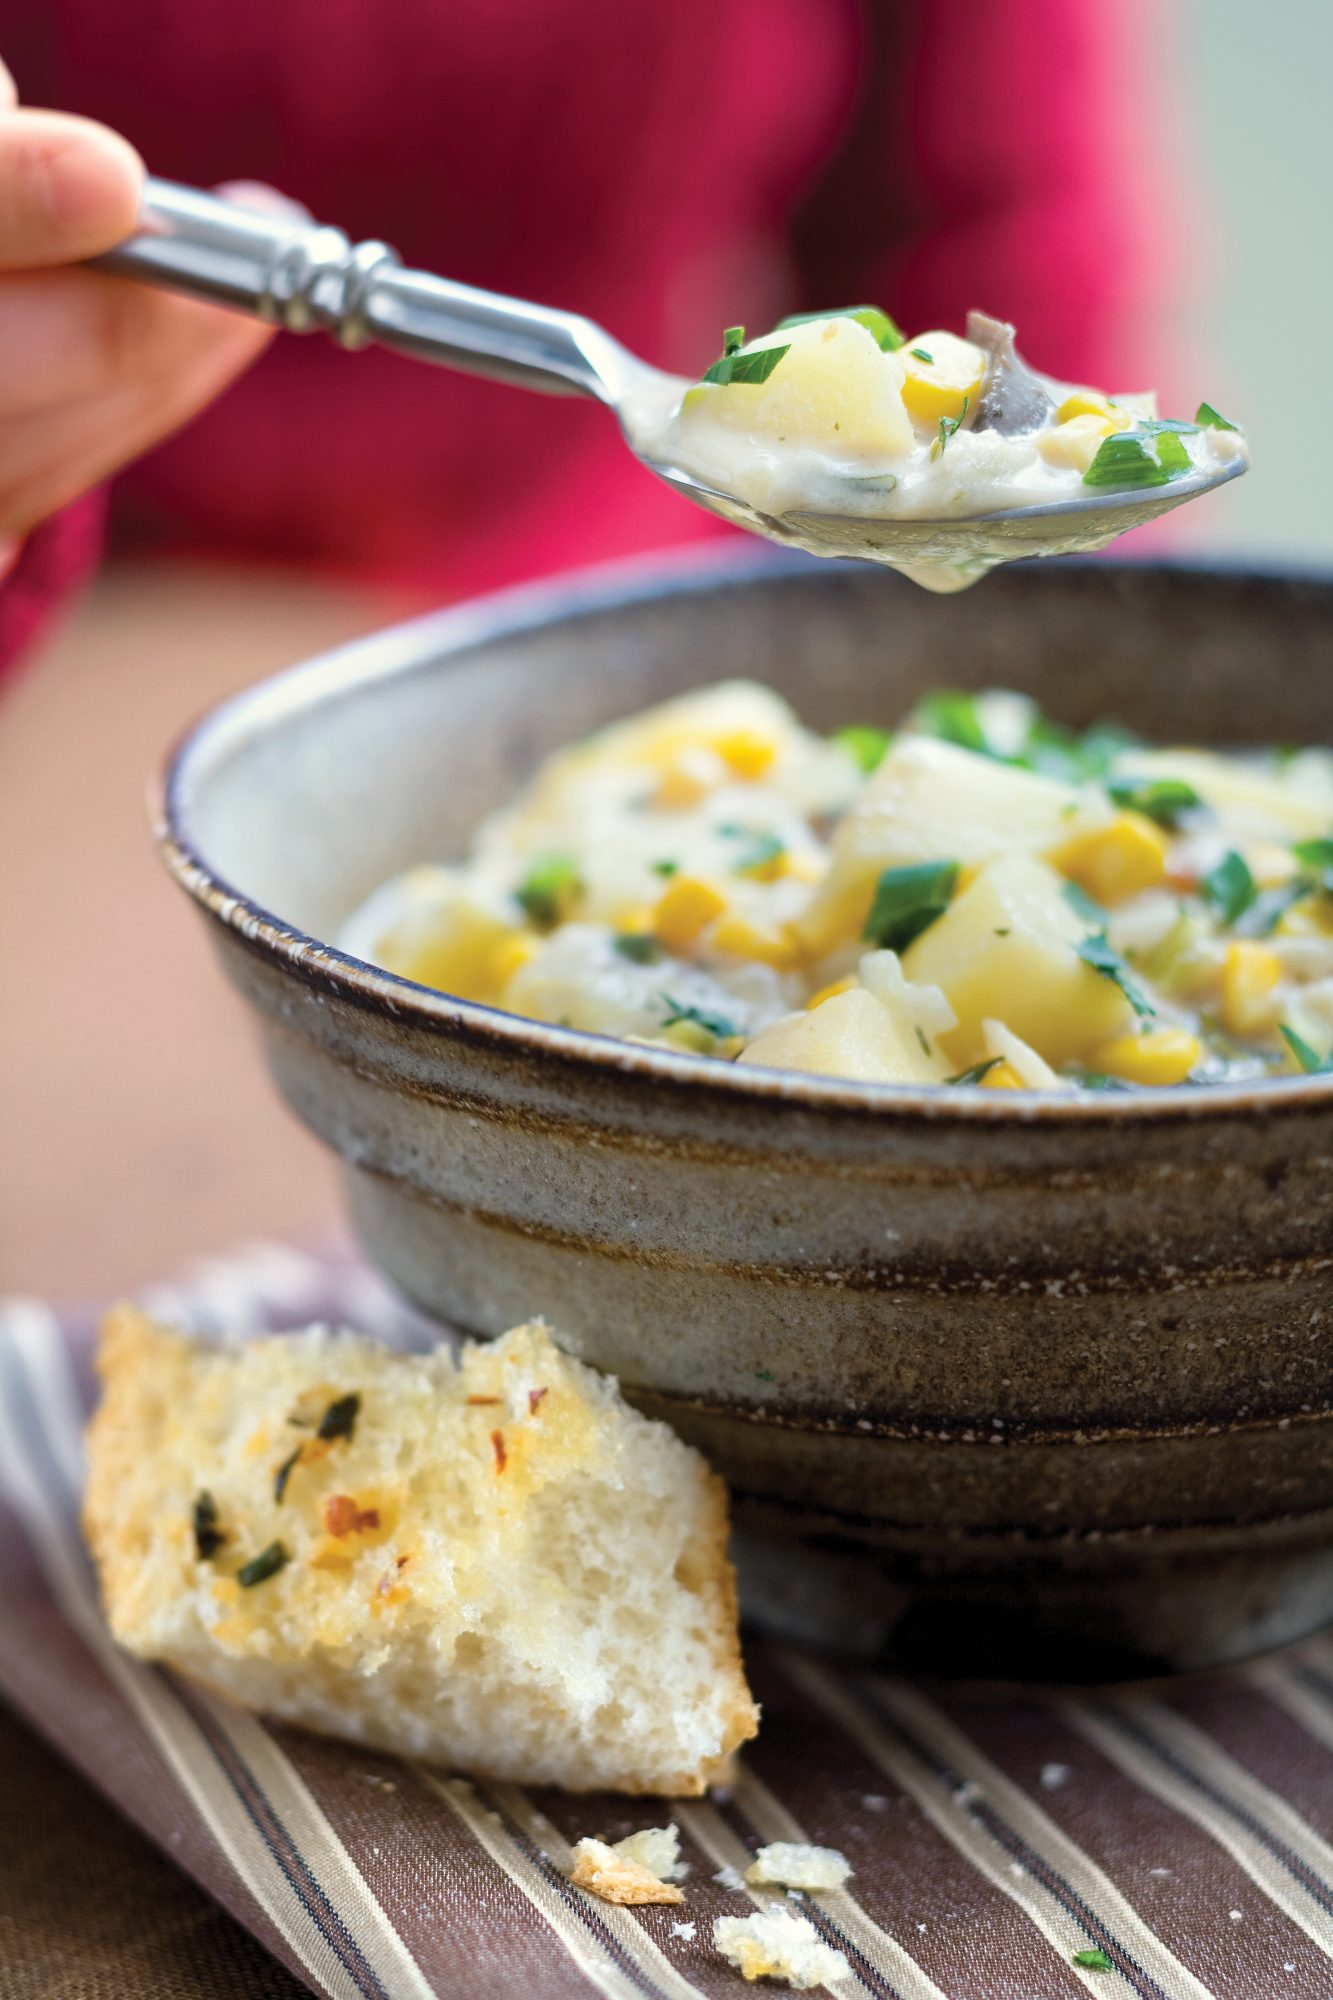 What's for Supper? Serve Chowder Tonight